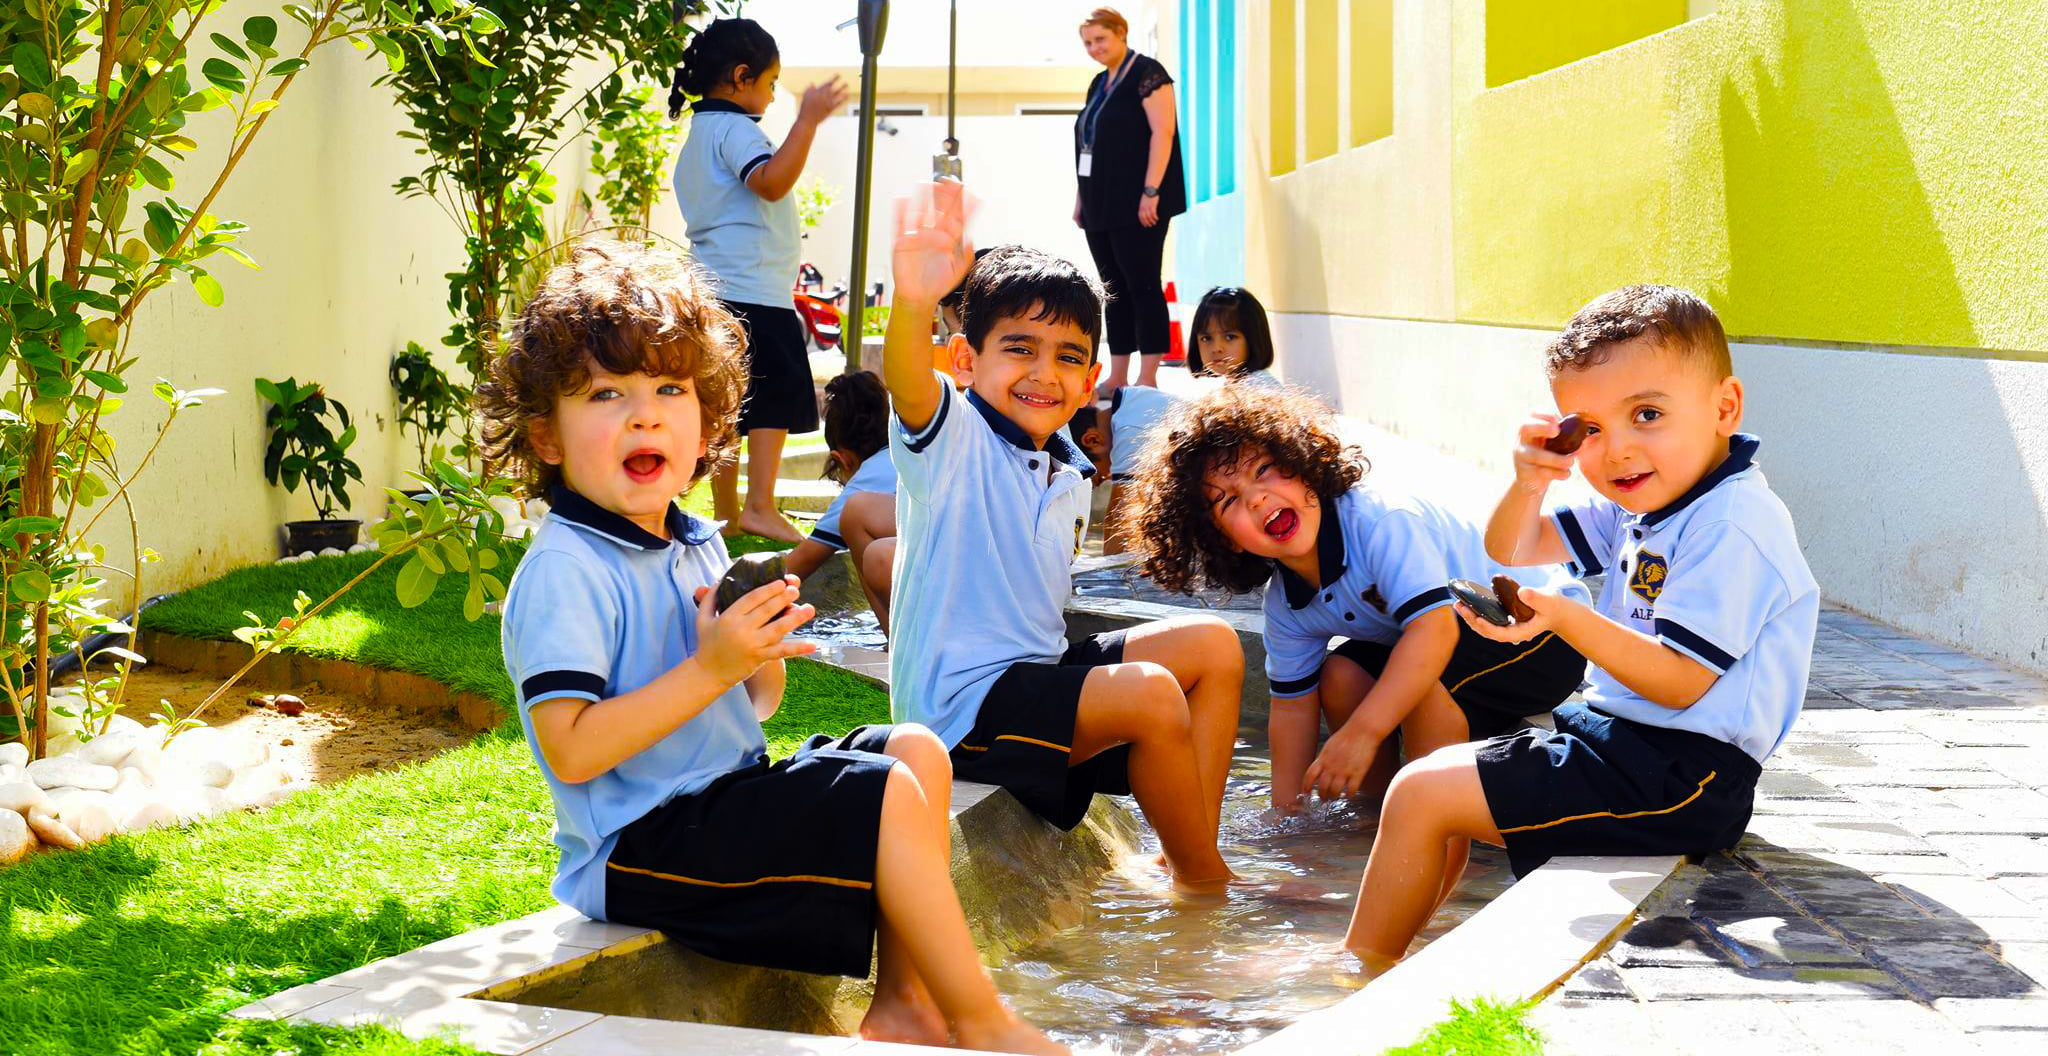 Photograph of children at The Alpha School in Dubai engaged in learning activities outside with water